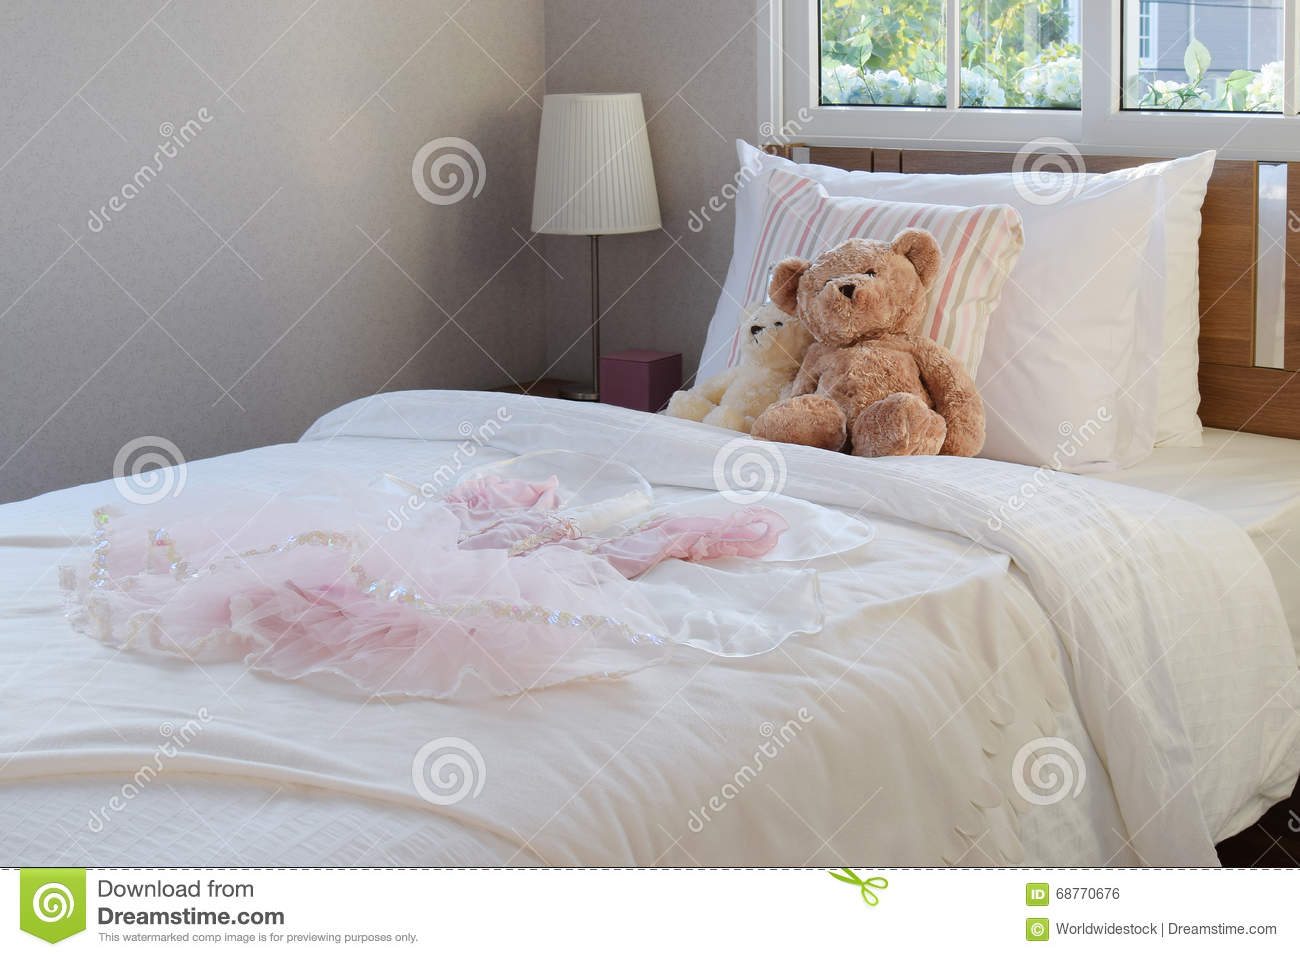 White Decorative Pillows For Bed : White Bedroom Decorative With Pillows And Dolls Stock Photo - Image of dolls, bedroom: 68770676